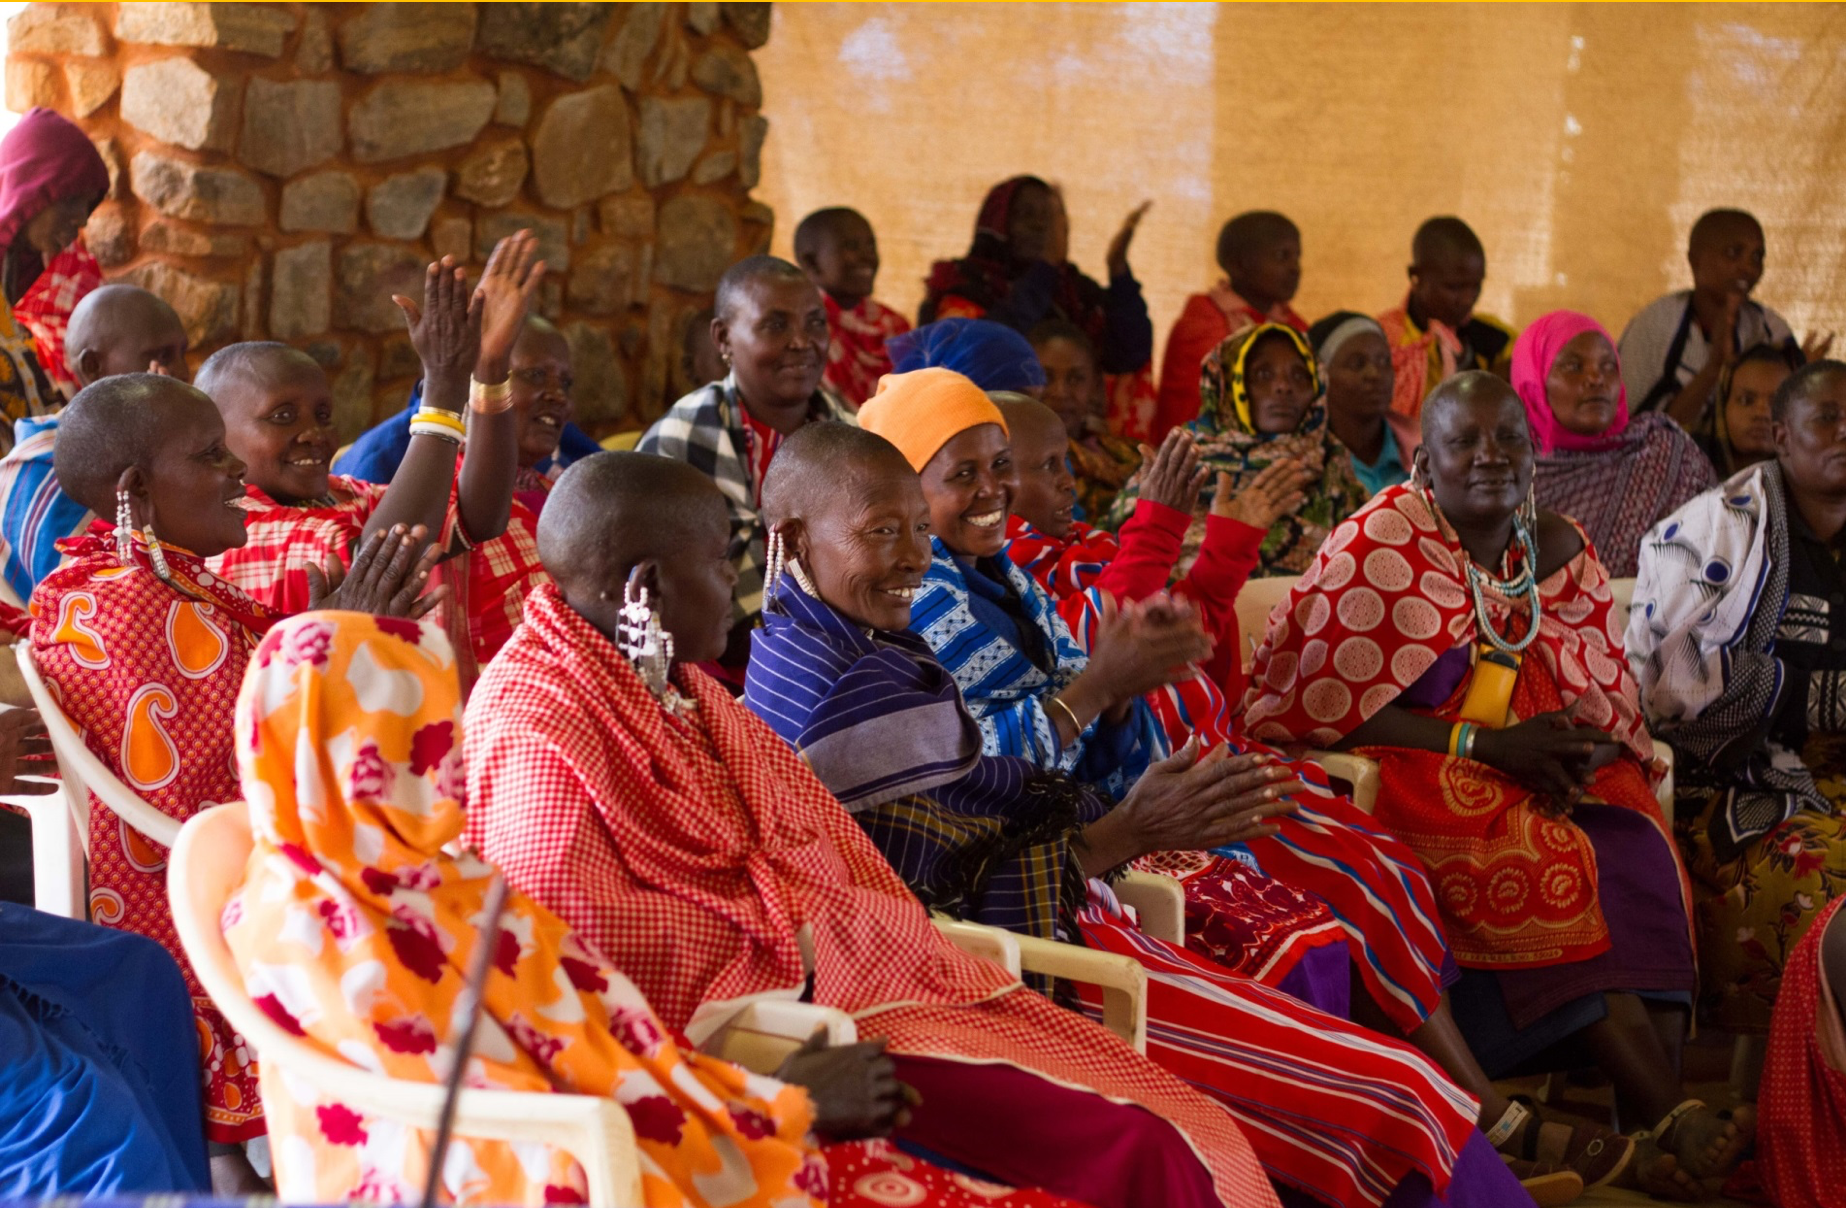 A group of Maasai women in a natural resource management seminar hosted by APW.